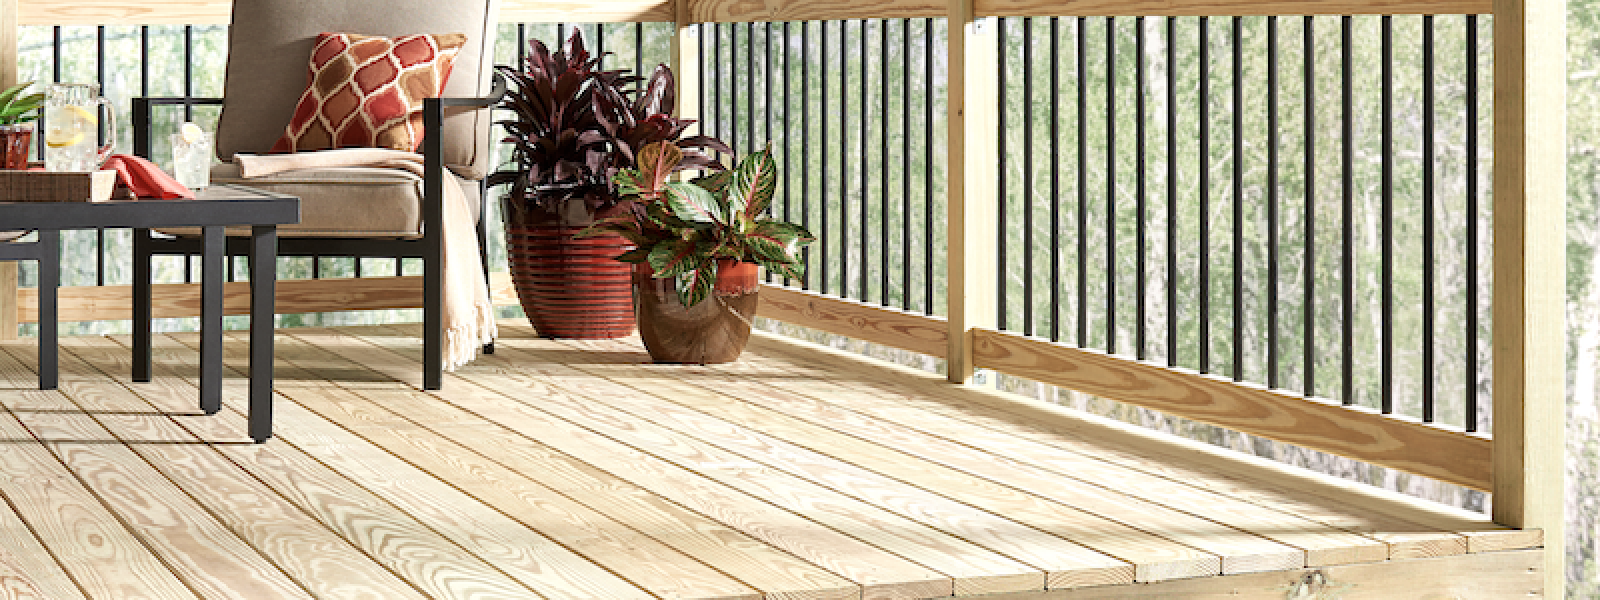 Ecolife stabilized weather resistant wood